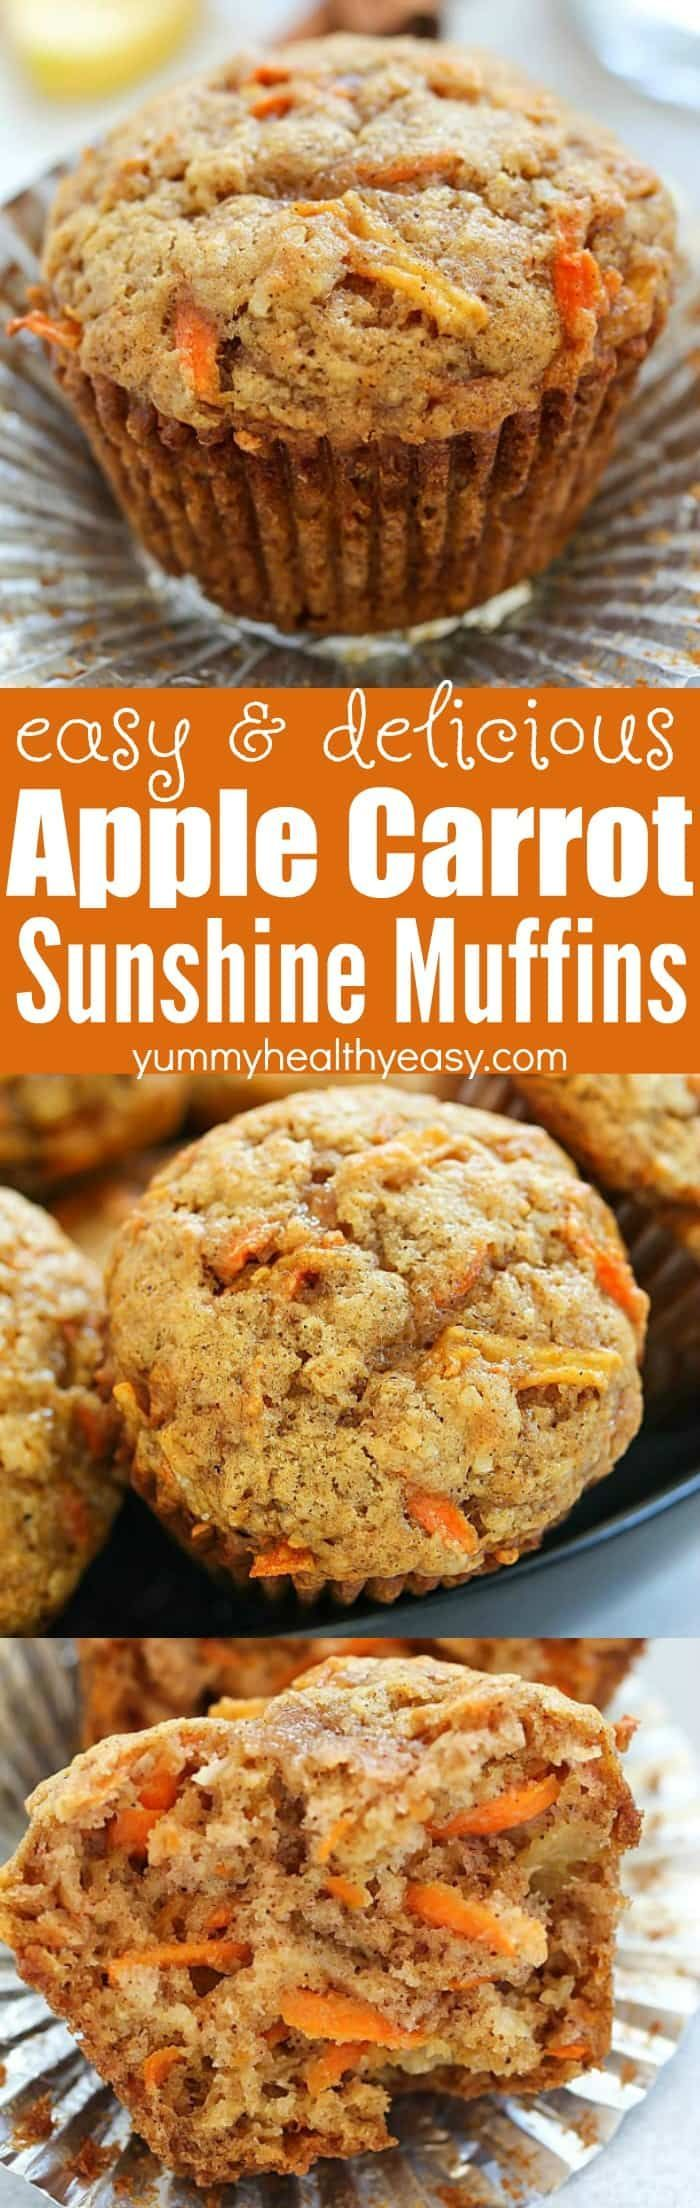 These Apple Carrot Muffins (also known as Sunshine Muffins) are full of carrots, apples, coconut, cinnamon & nutmeg. Your house will smell amazing after baking a batch of them! They're easy to make and are so fluffy and delicious, they'll quickly become a family favorite!